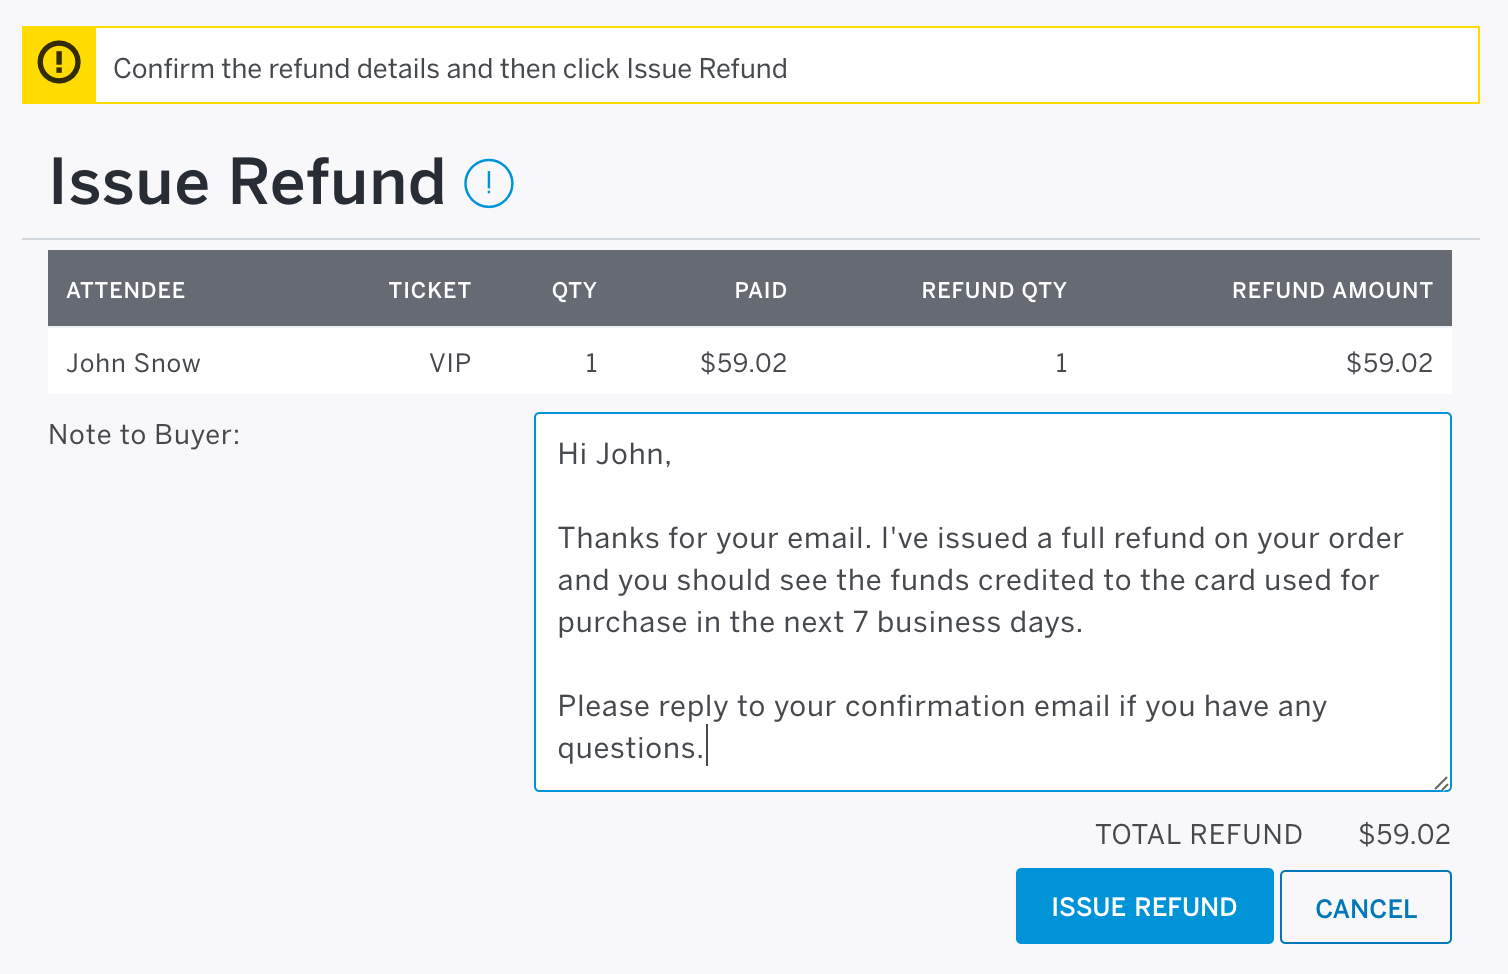 When issuing a partial refund, be sure to let the attendee know why. The Note to Buyer field appears below the refund information. Click to type and expand the field by dragging the bottom-right corner of the text box.